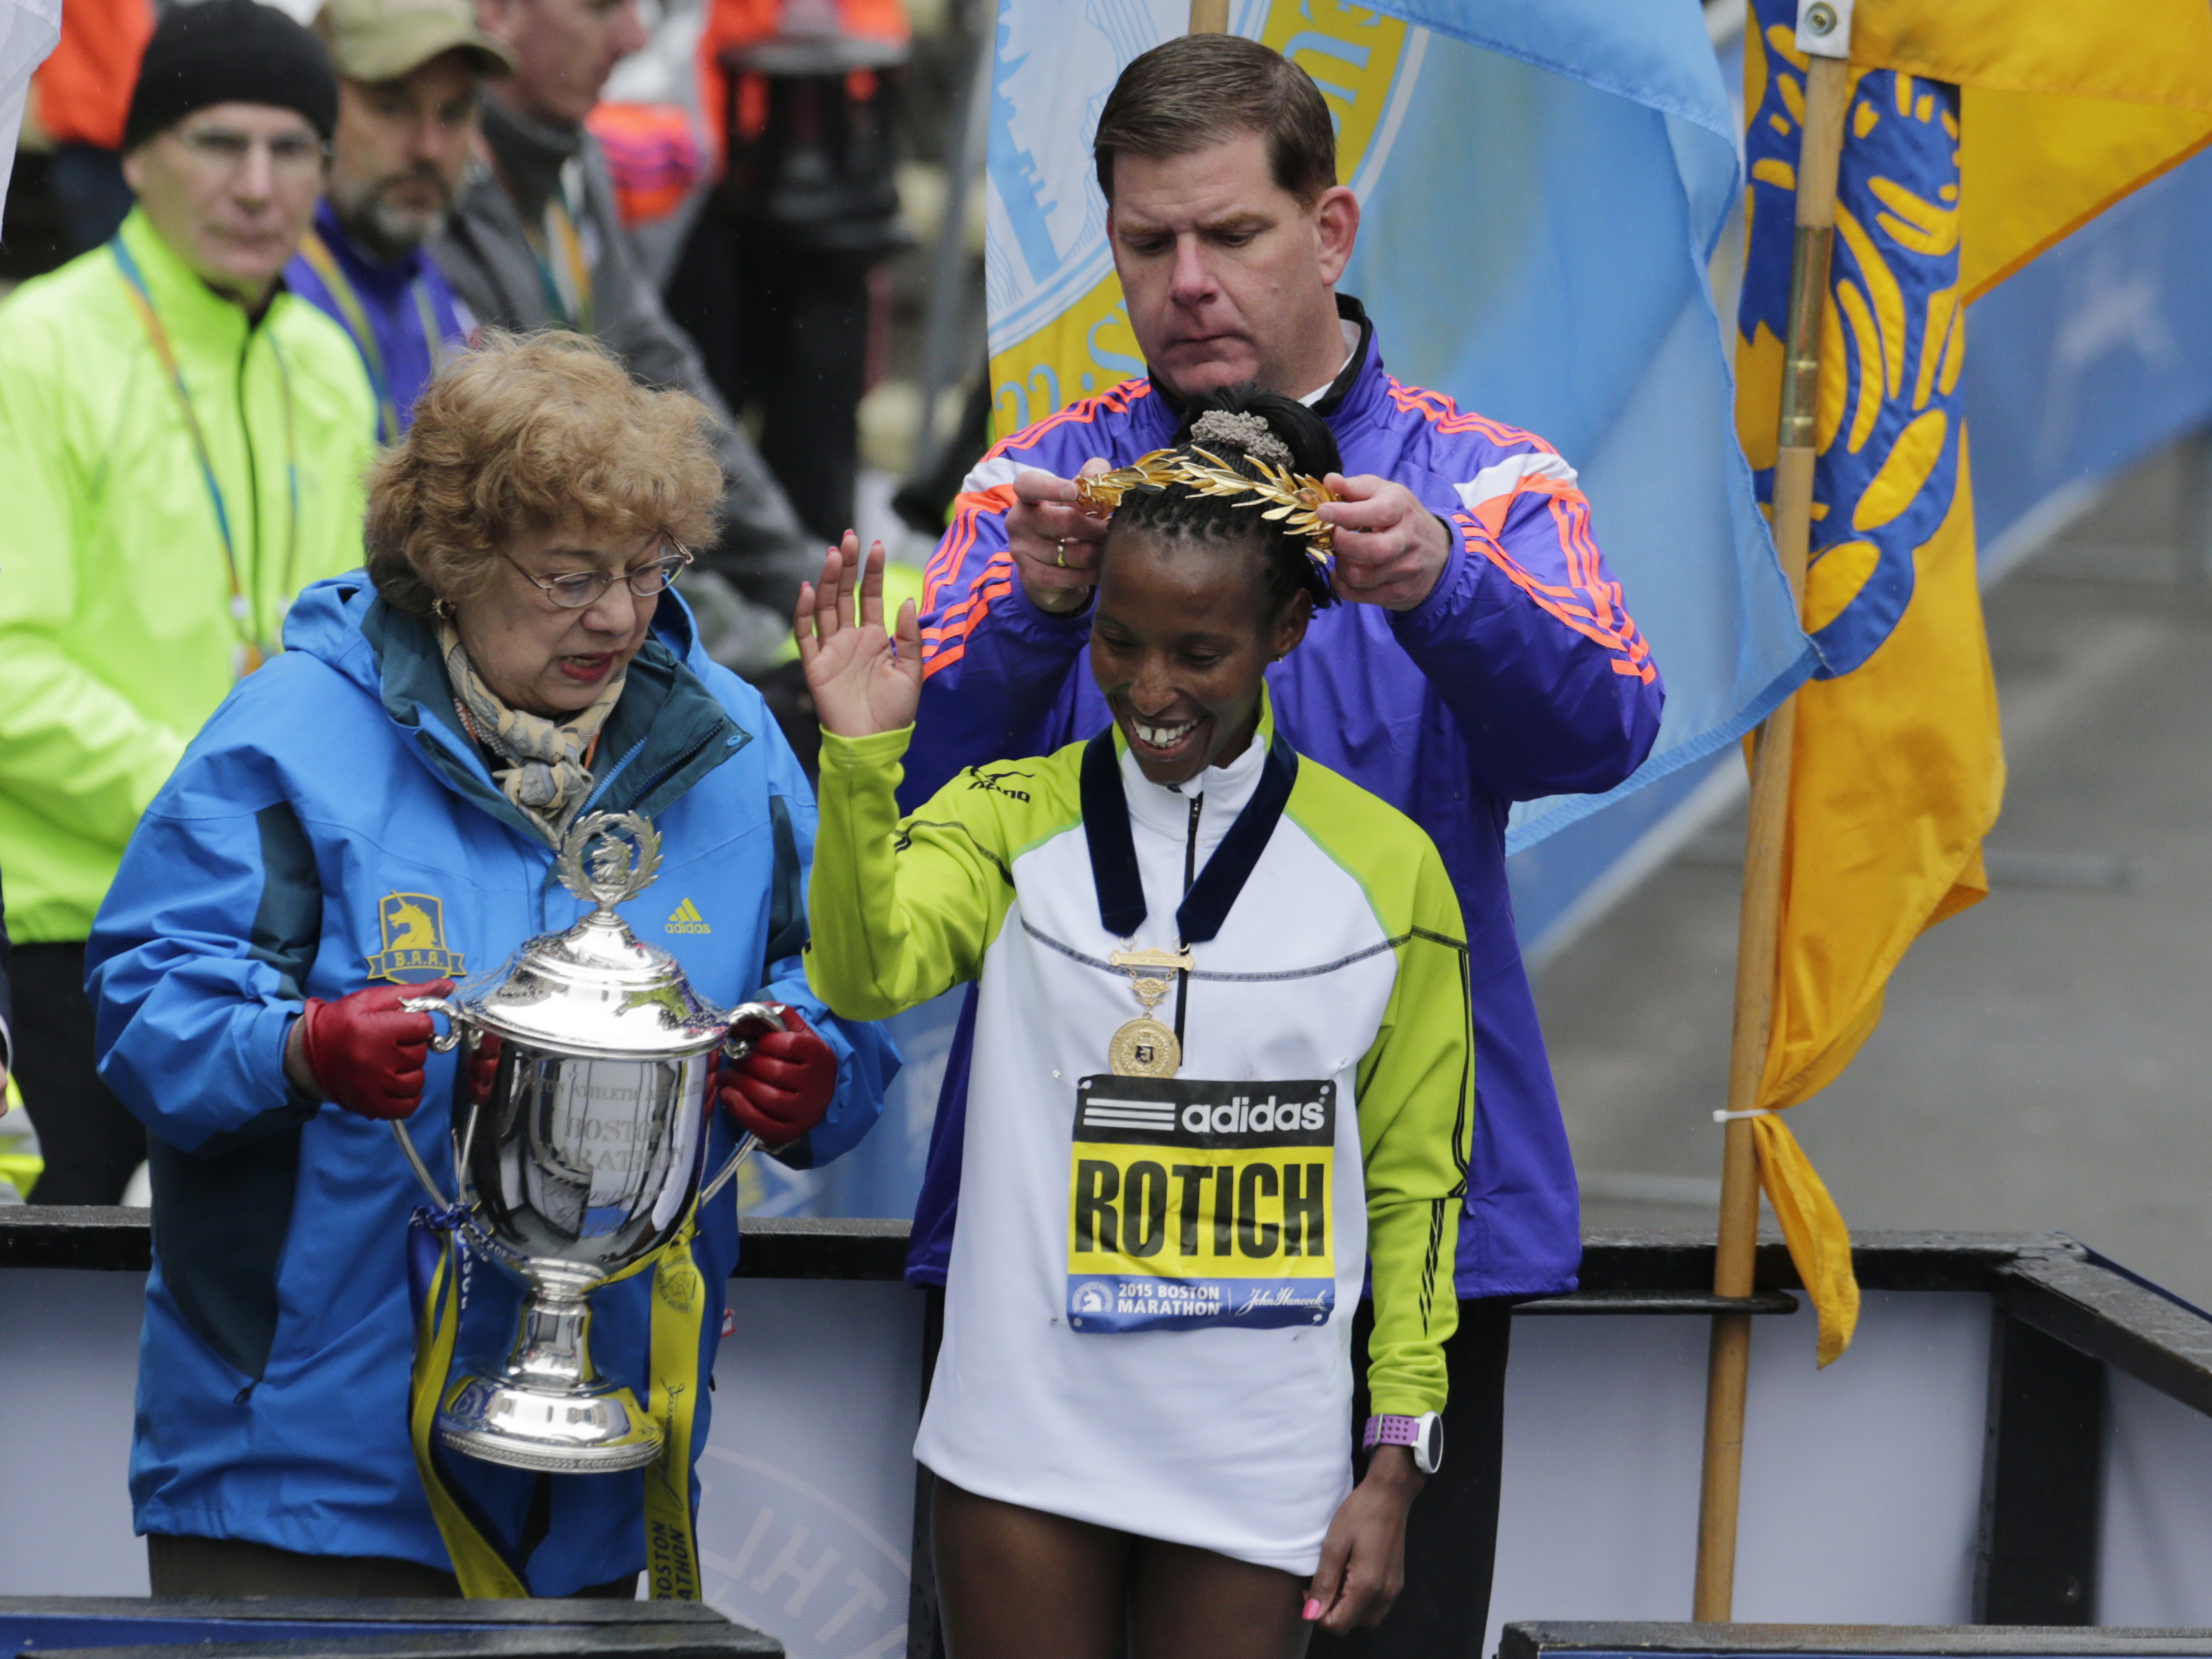 Boston Mayor Marty Walsh crowns Caroline Rotich, of Kenya, after she won the women's division of the Boston Marathon Monday, April 20, 2015 in Boston. (AP Photo/Elise Amendola)